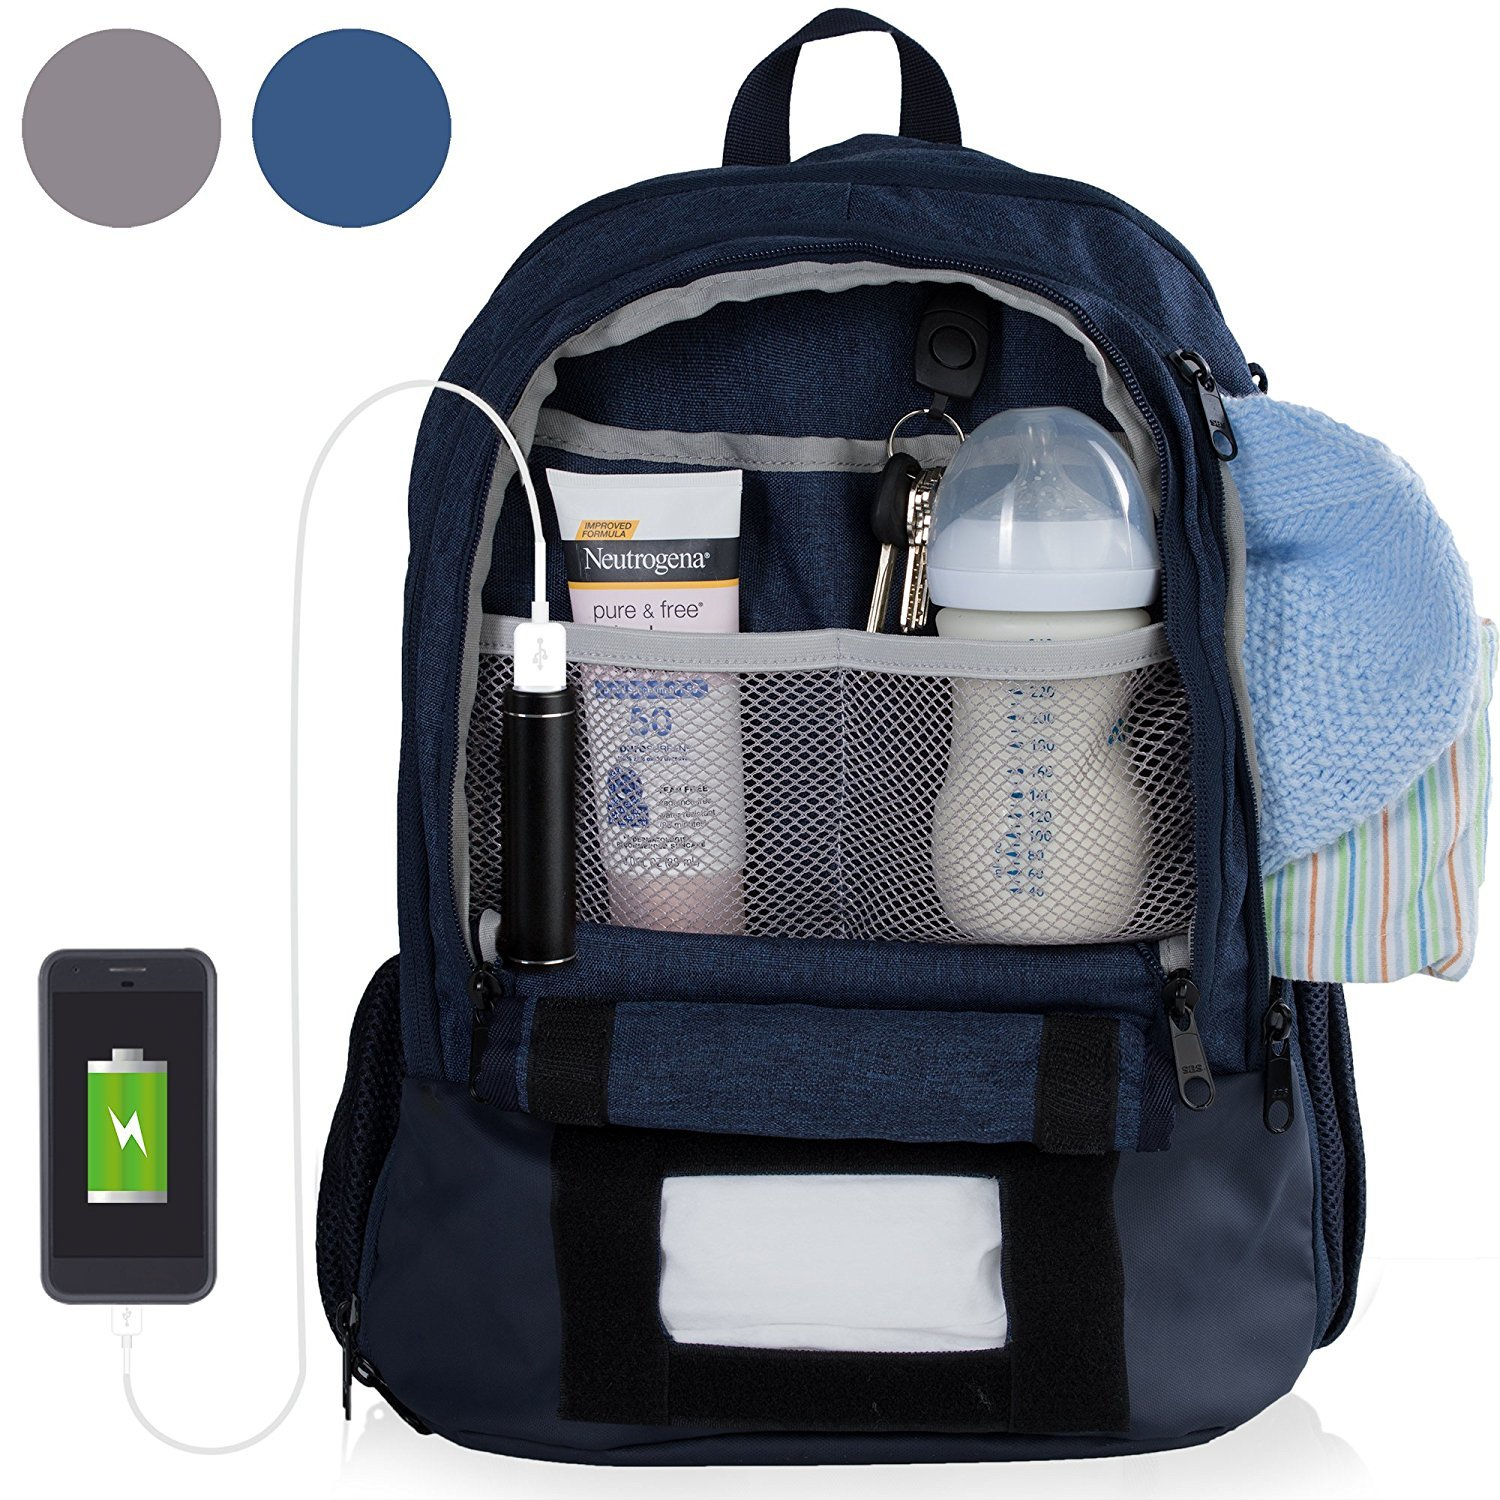 Diaper Bag Backpack With 16 Pockets! Phone Charger, Changing Pad, Stroller Straps & Insulated Bottle Pocket - Great For Mom, Dad, & Travel (Grey)